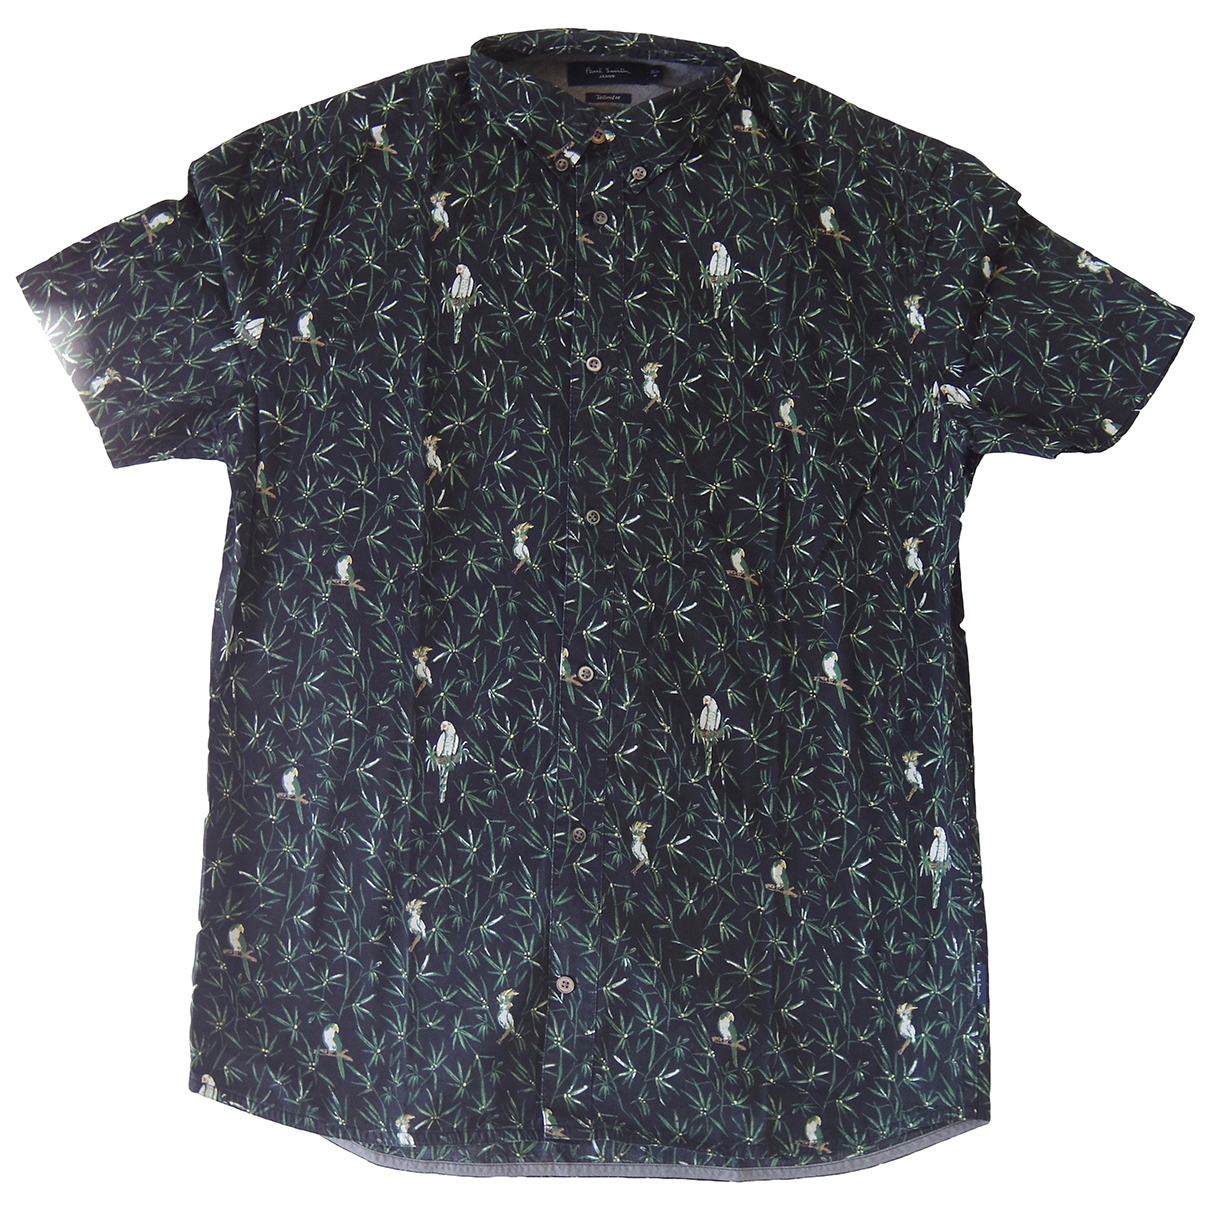 Paul Smith \N Black Cotton Shirts for Men M International